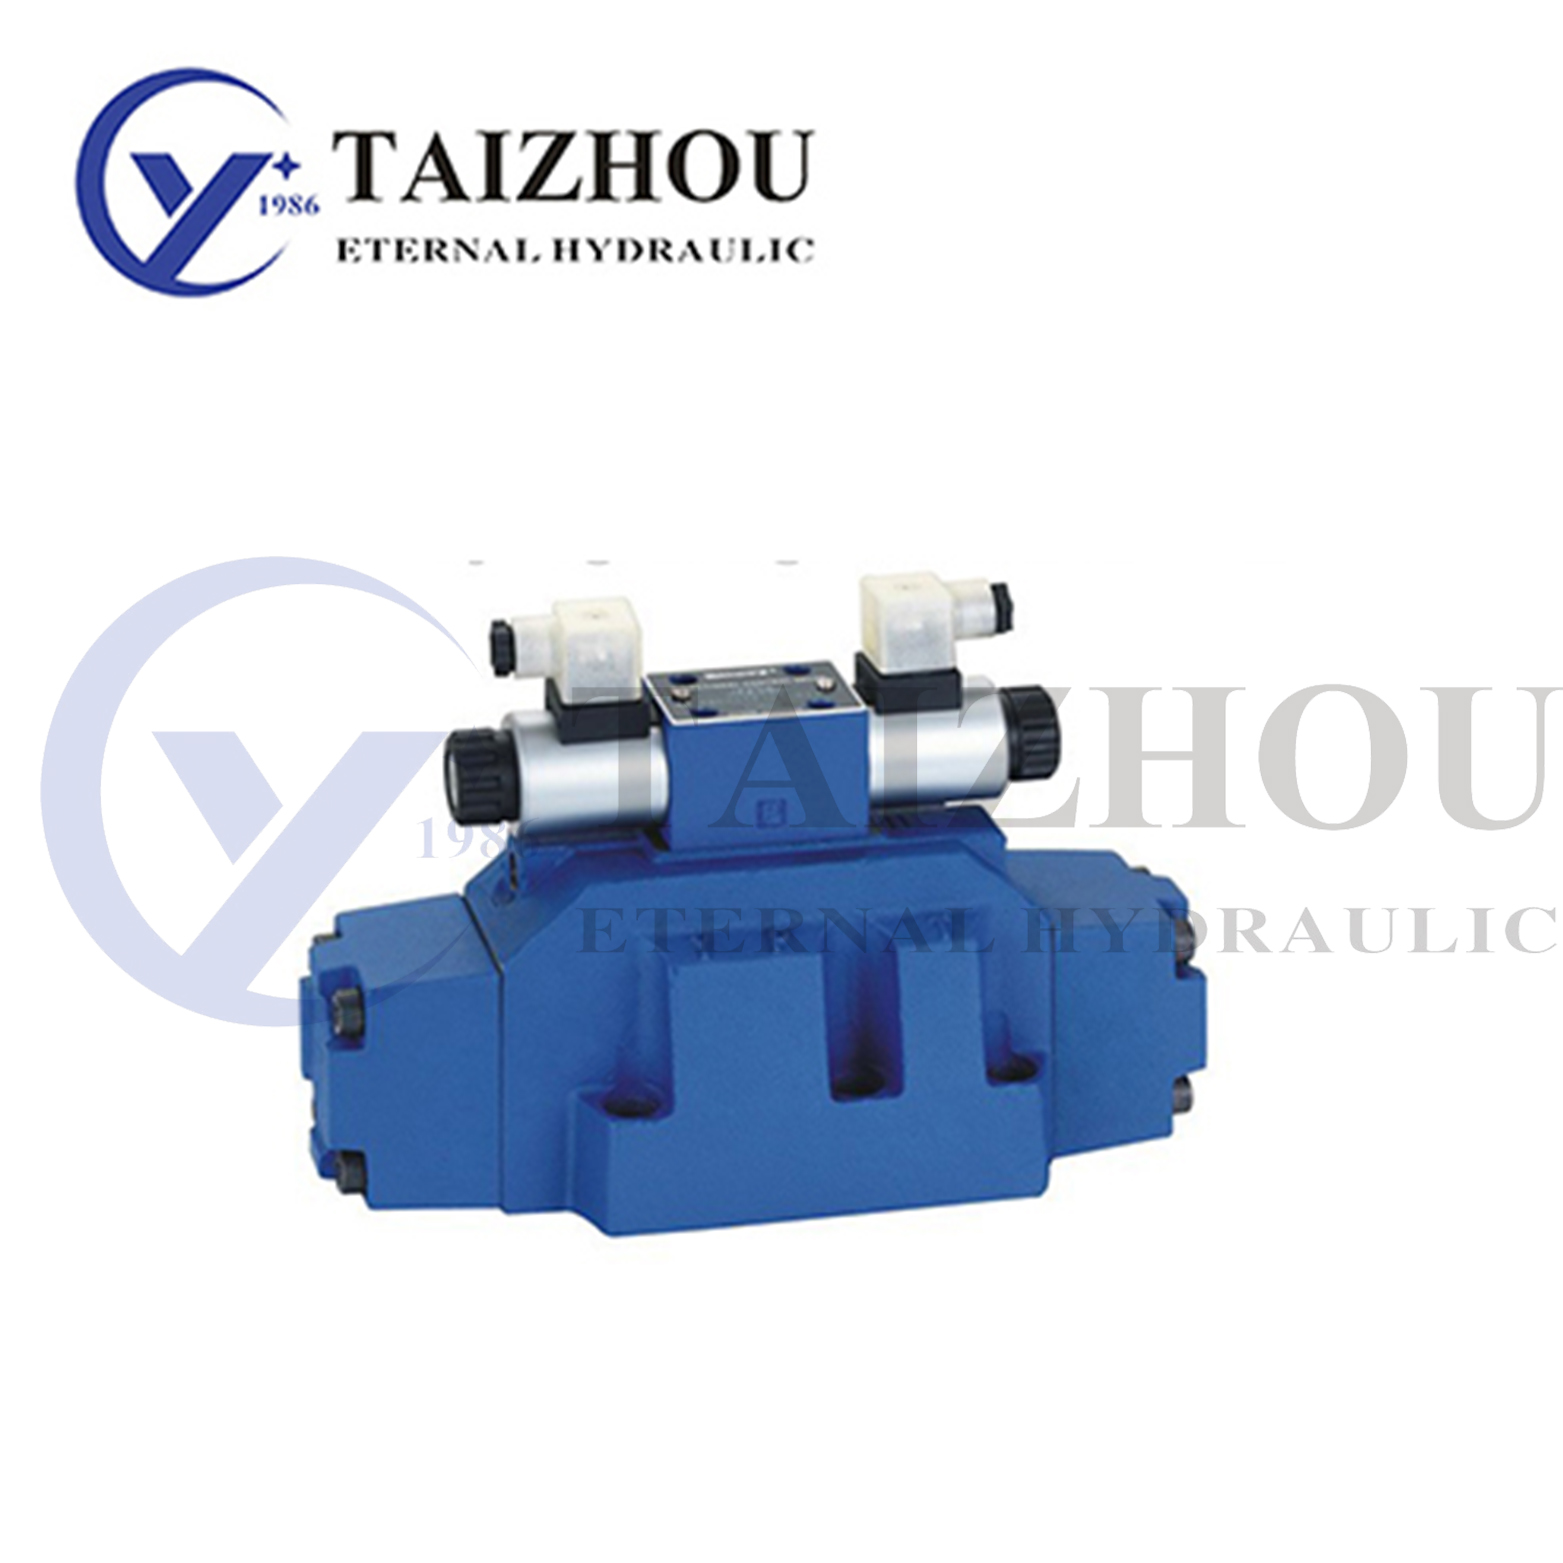 WEH Series Solenoid Controlled Pilot Operated Directional Valve